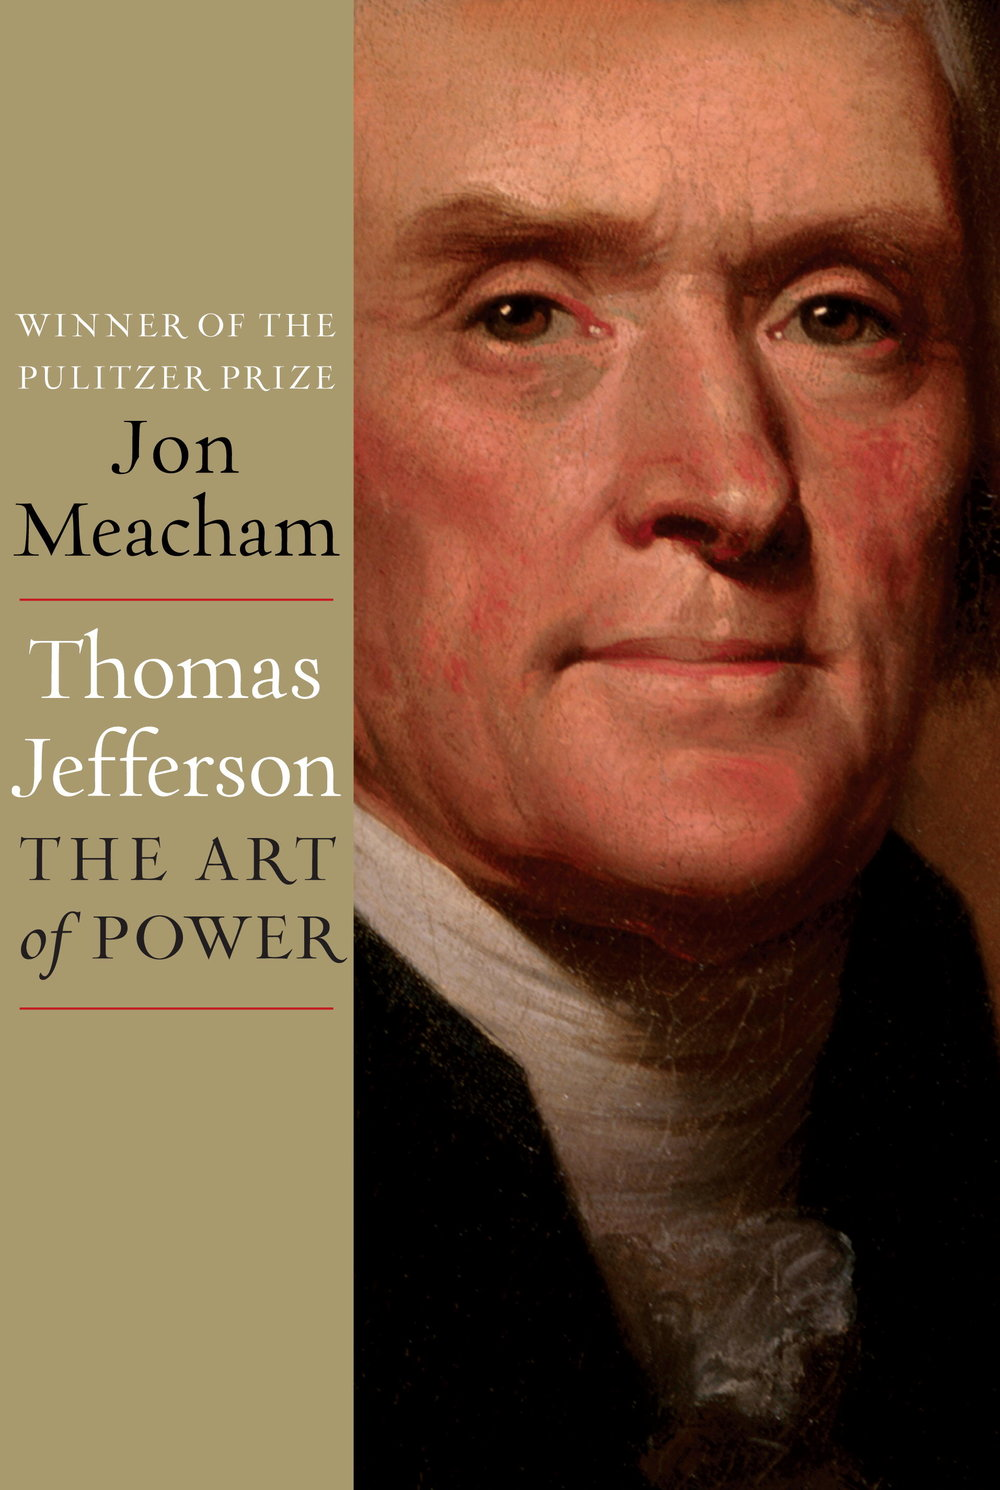 thomasjeffersoncover_2.jpg